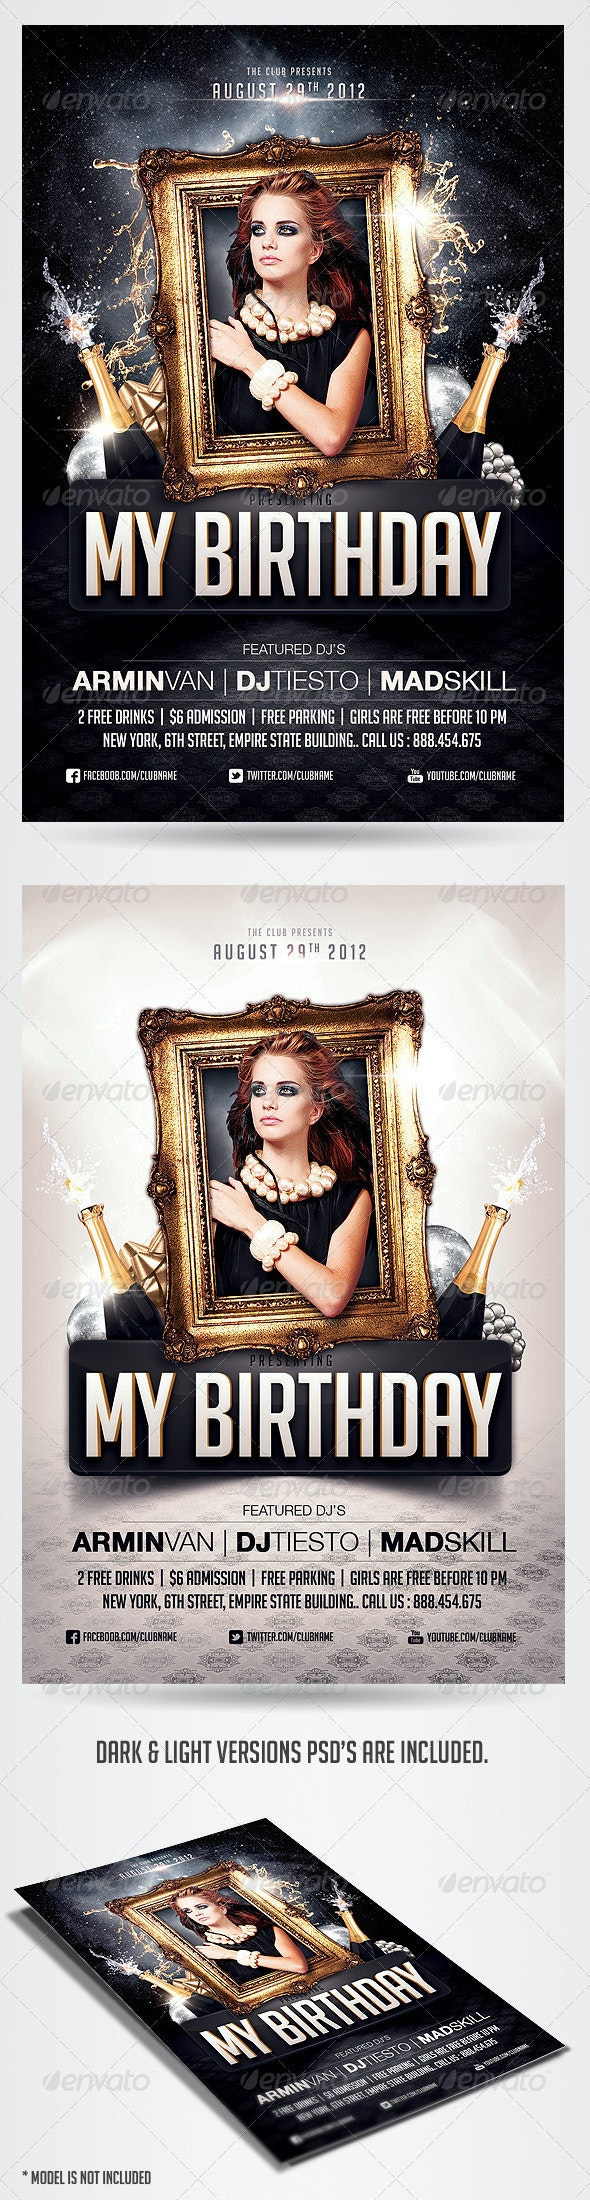 Birthday Party Invitation Flyer Template - Clubs & Parties Events